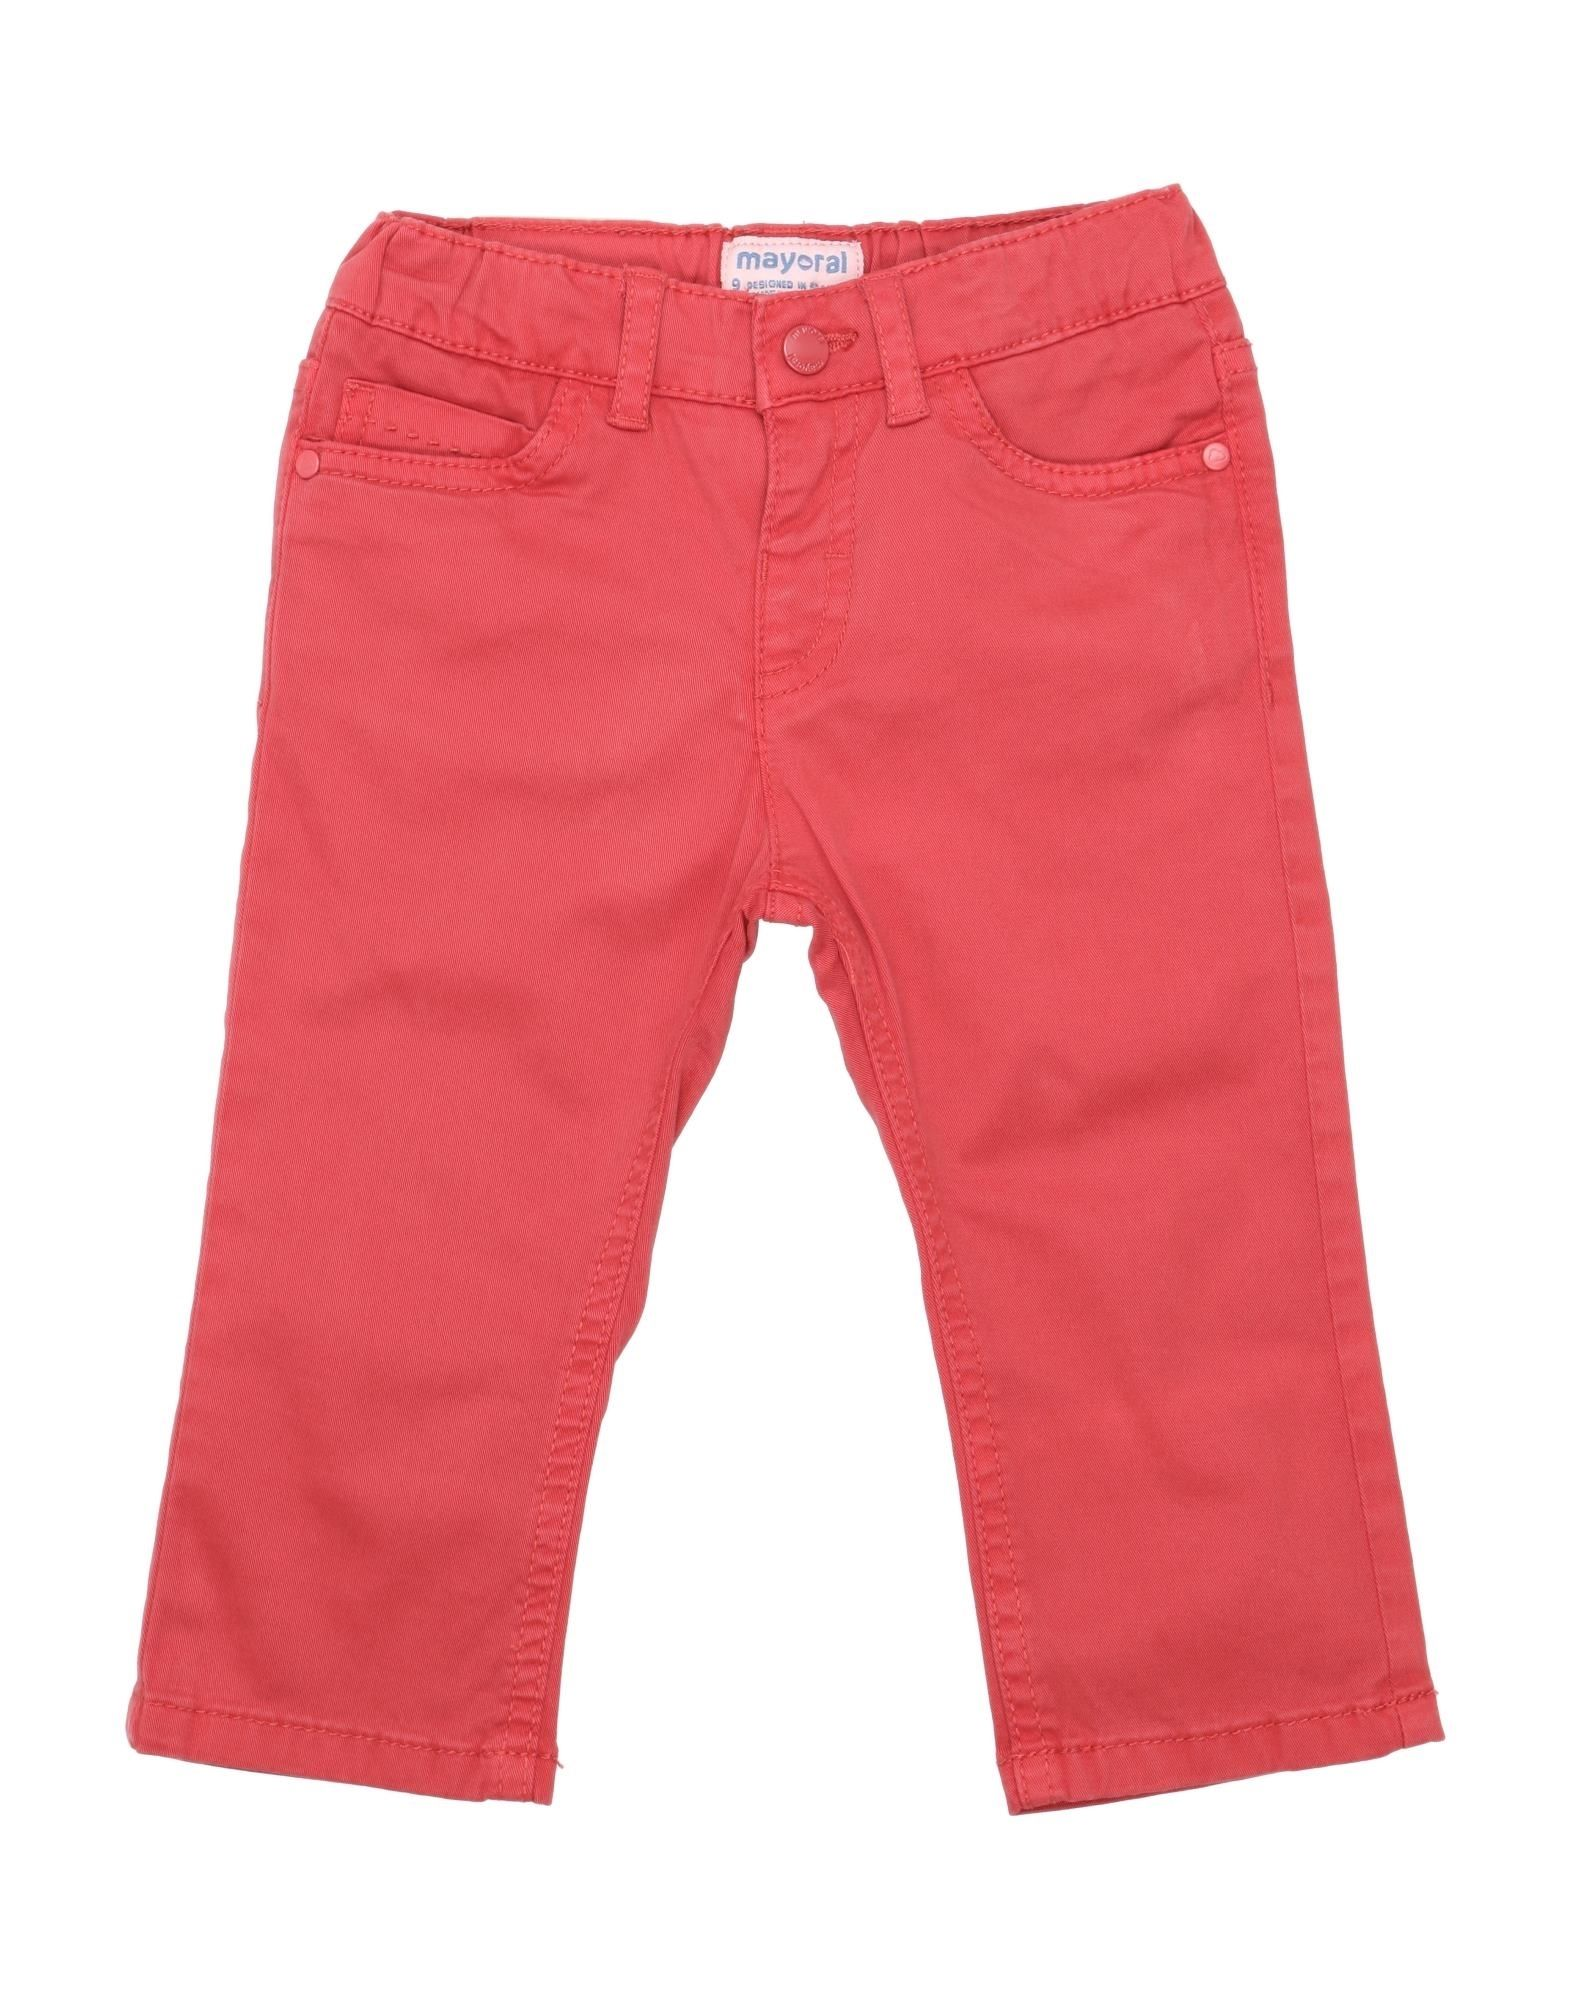 Mayoral Kids' Casual Pants In Red